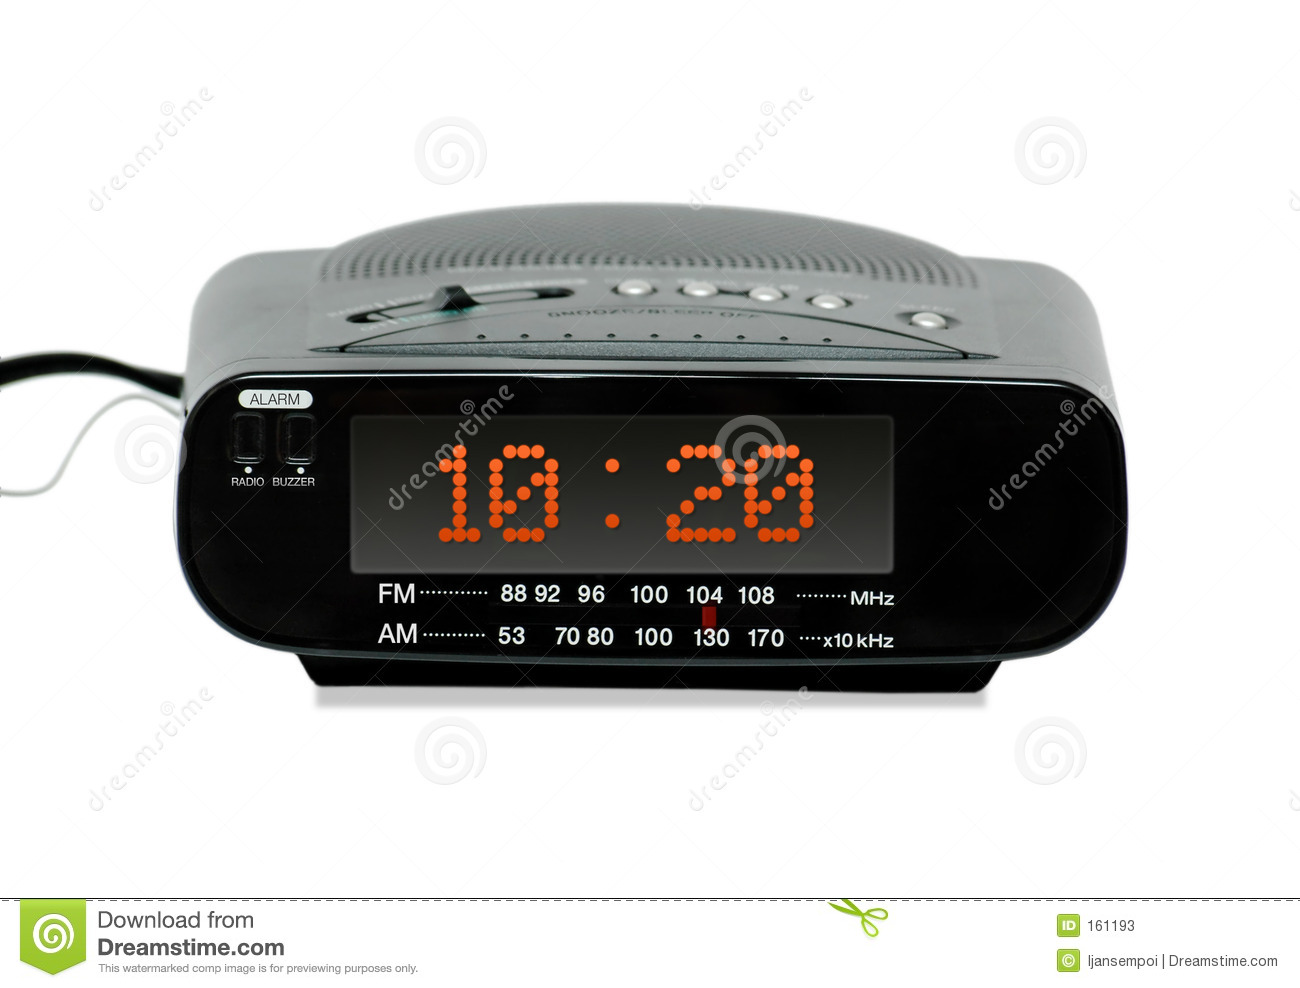 digital radio alarm clock stock photos image 161193. Black Bedroom Furniture Sets. Home Design Ideas